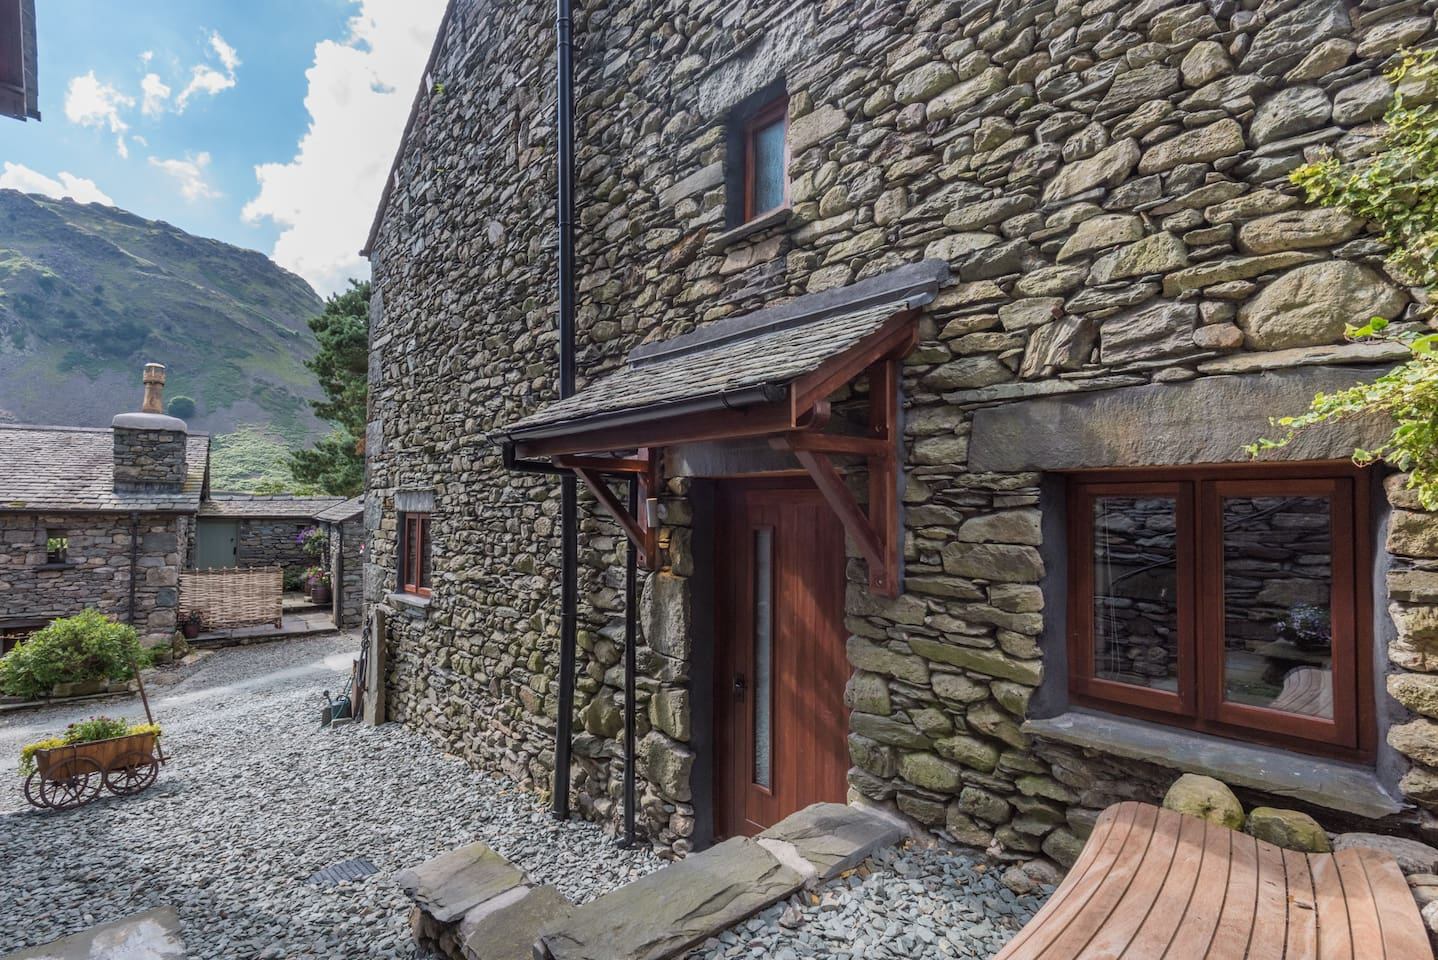 The outside space and entrance, with Helm Crag (Lion & the Lamb) in the distance